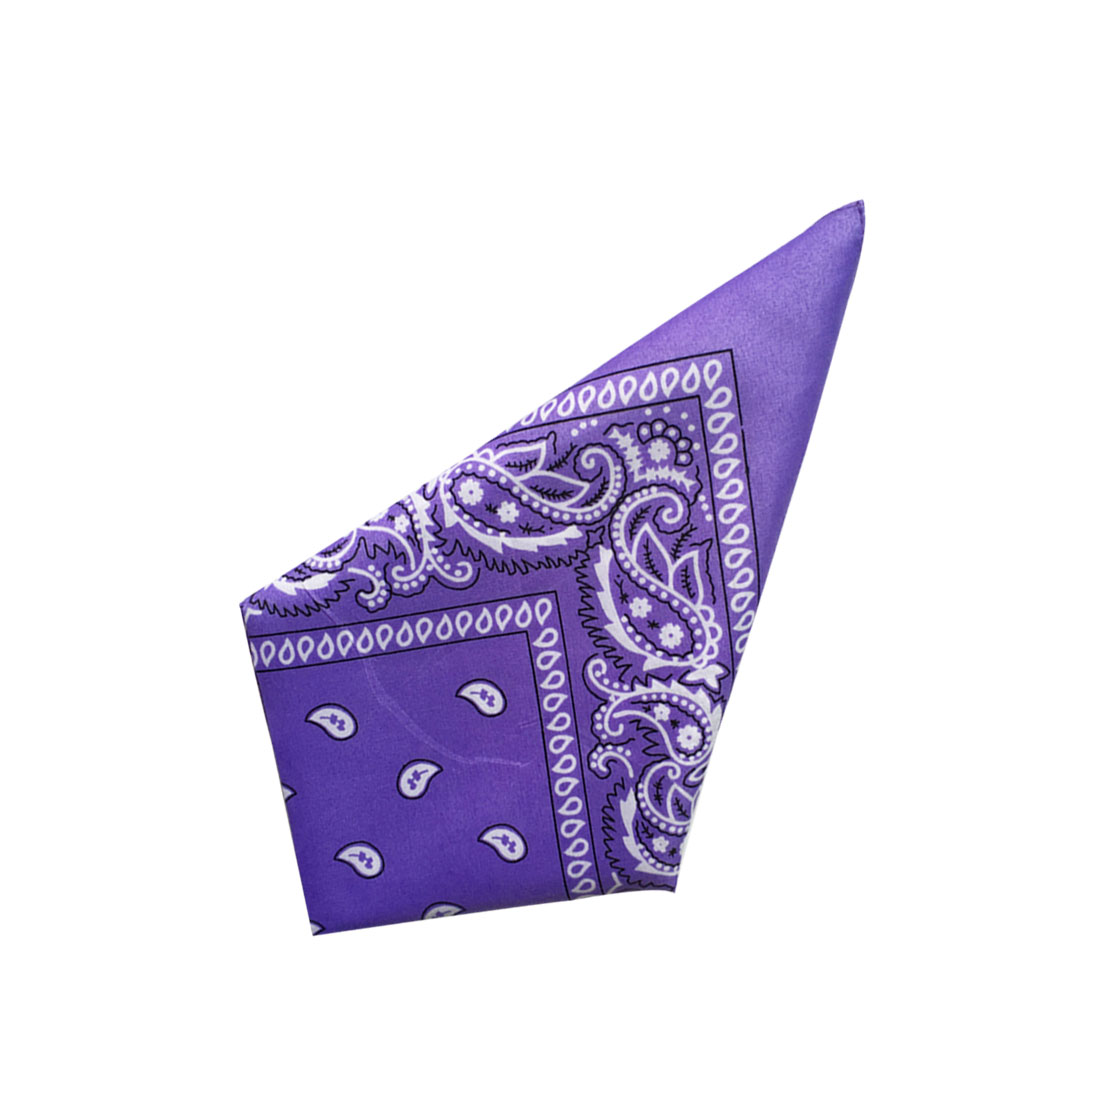 Fahion Bike Scarves Unisex Riding Magic Headband Blend Hip Hop Head Cycle Neck Tube Paisley Printed Bandanas 55 55cm in Men 39 s Scarves from Apparel Accessories